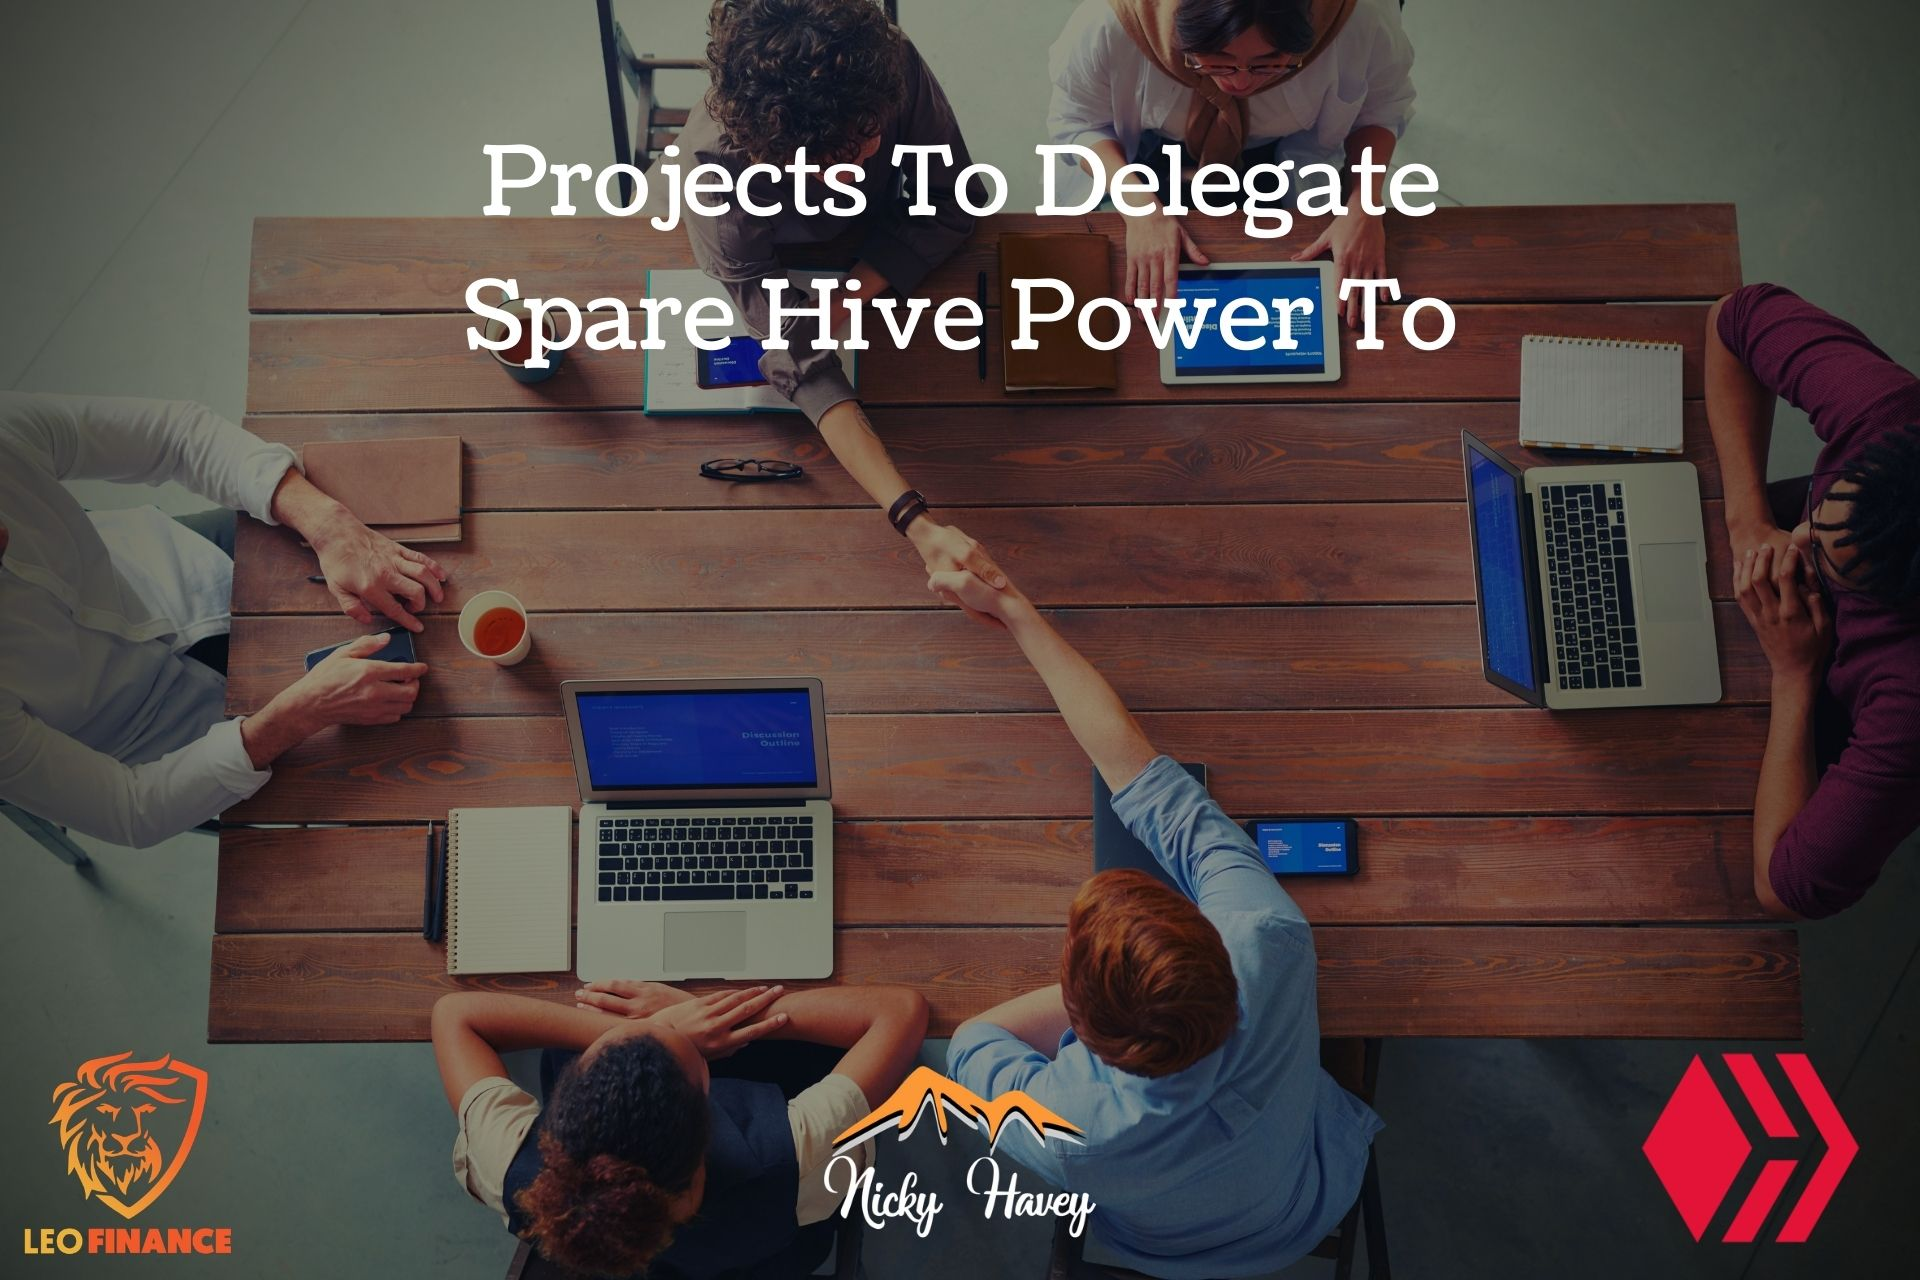 Projects To Delegate Spare Hive Power To.jpg